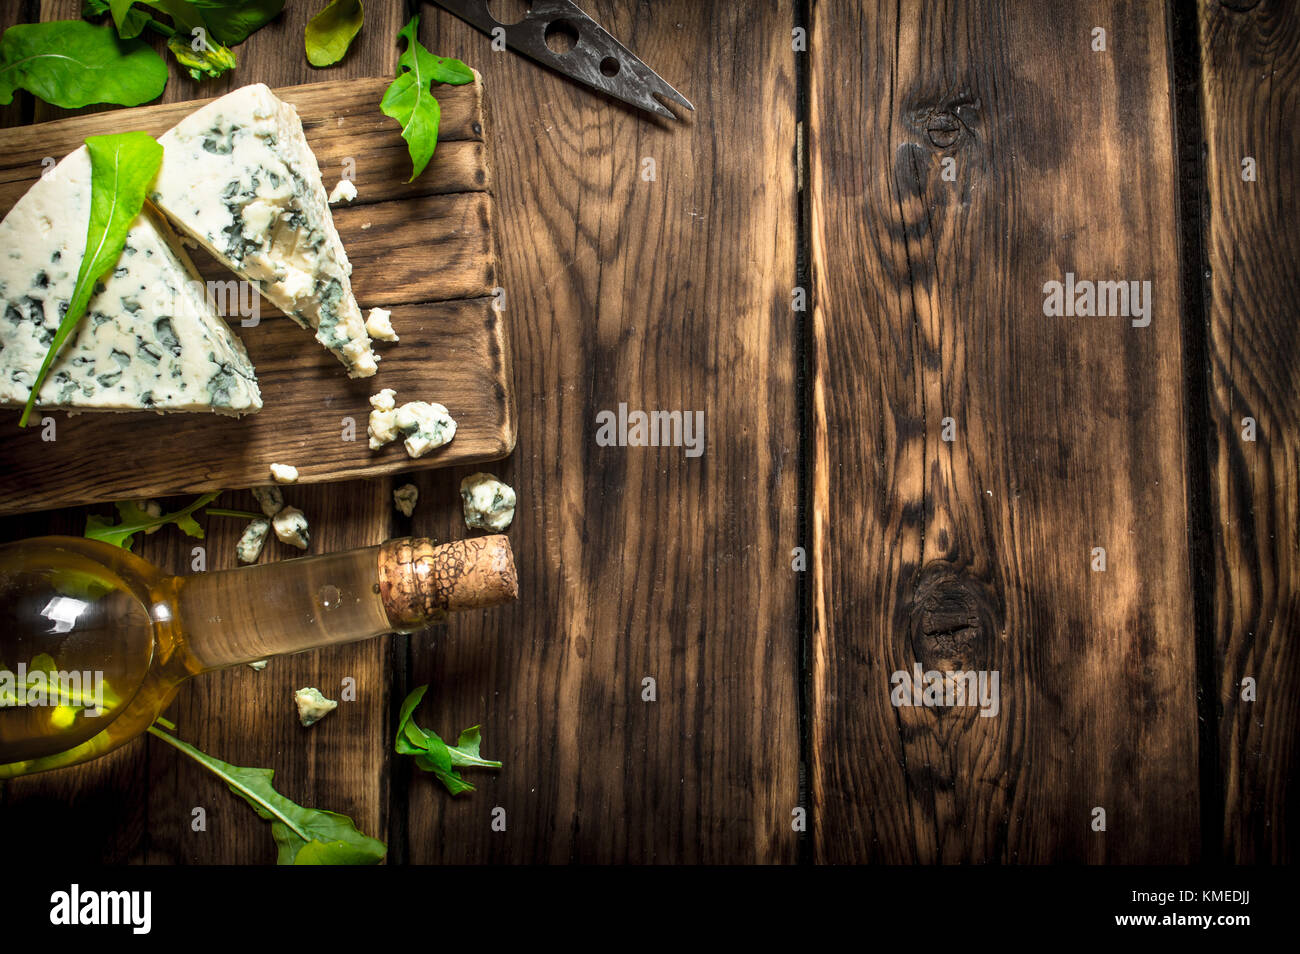 Bottle with white wine and blue cheese on a cutting Board. - Stock Image